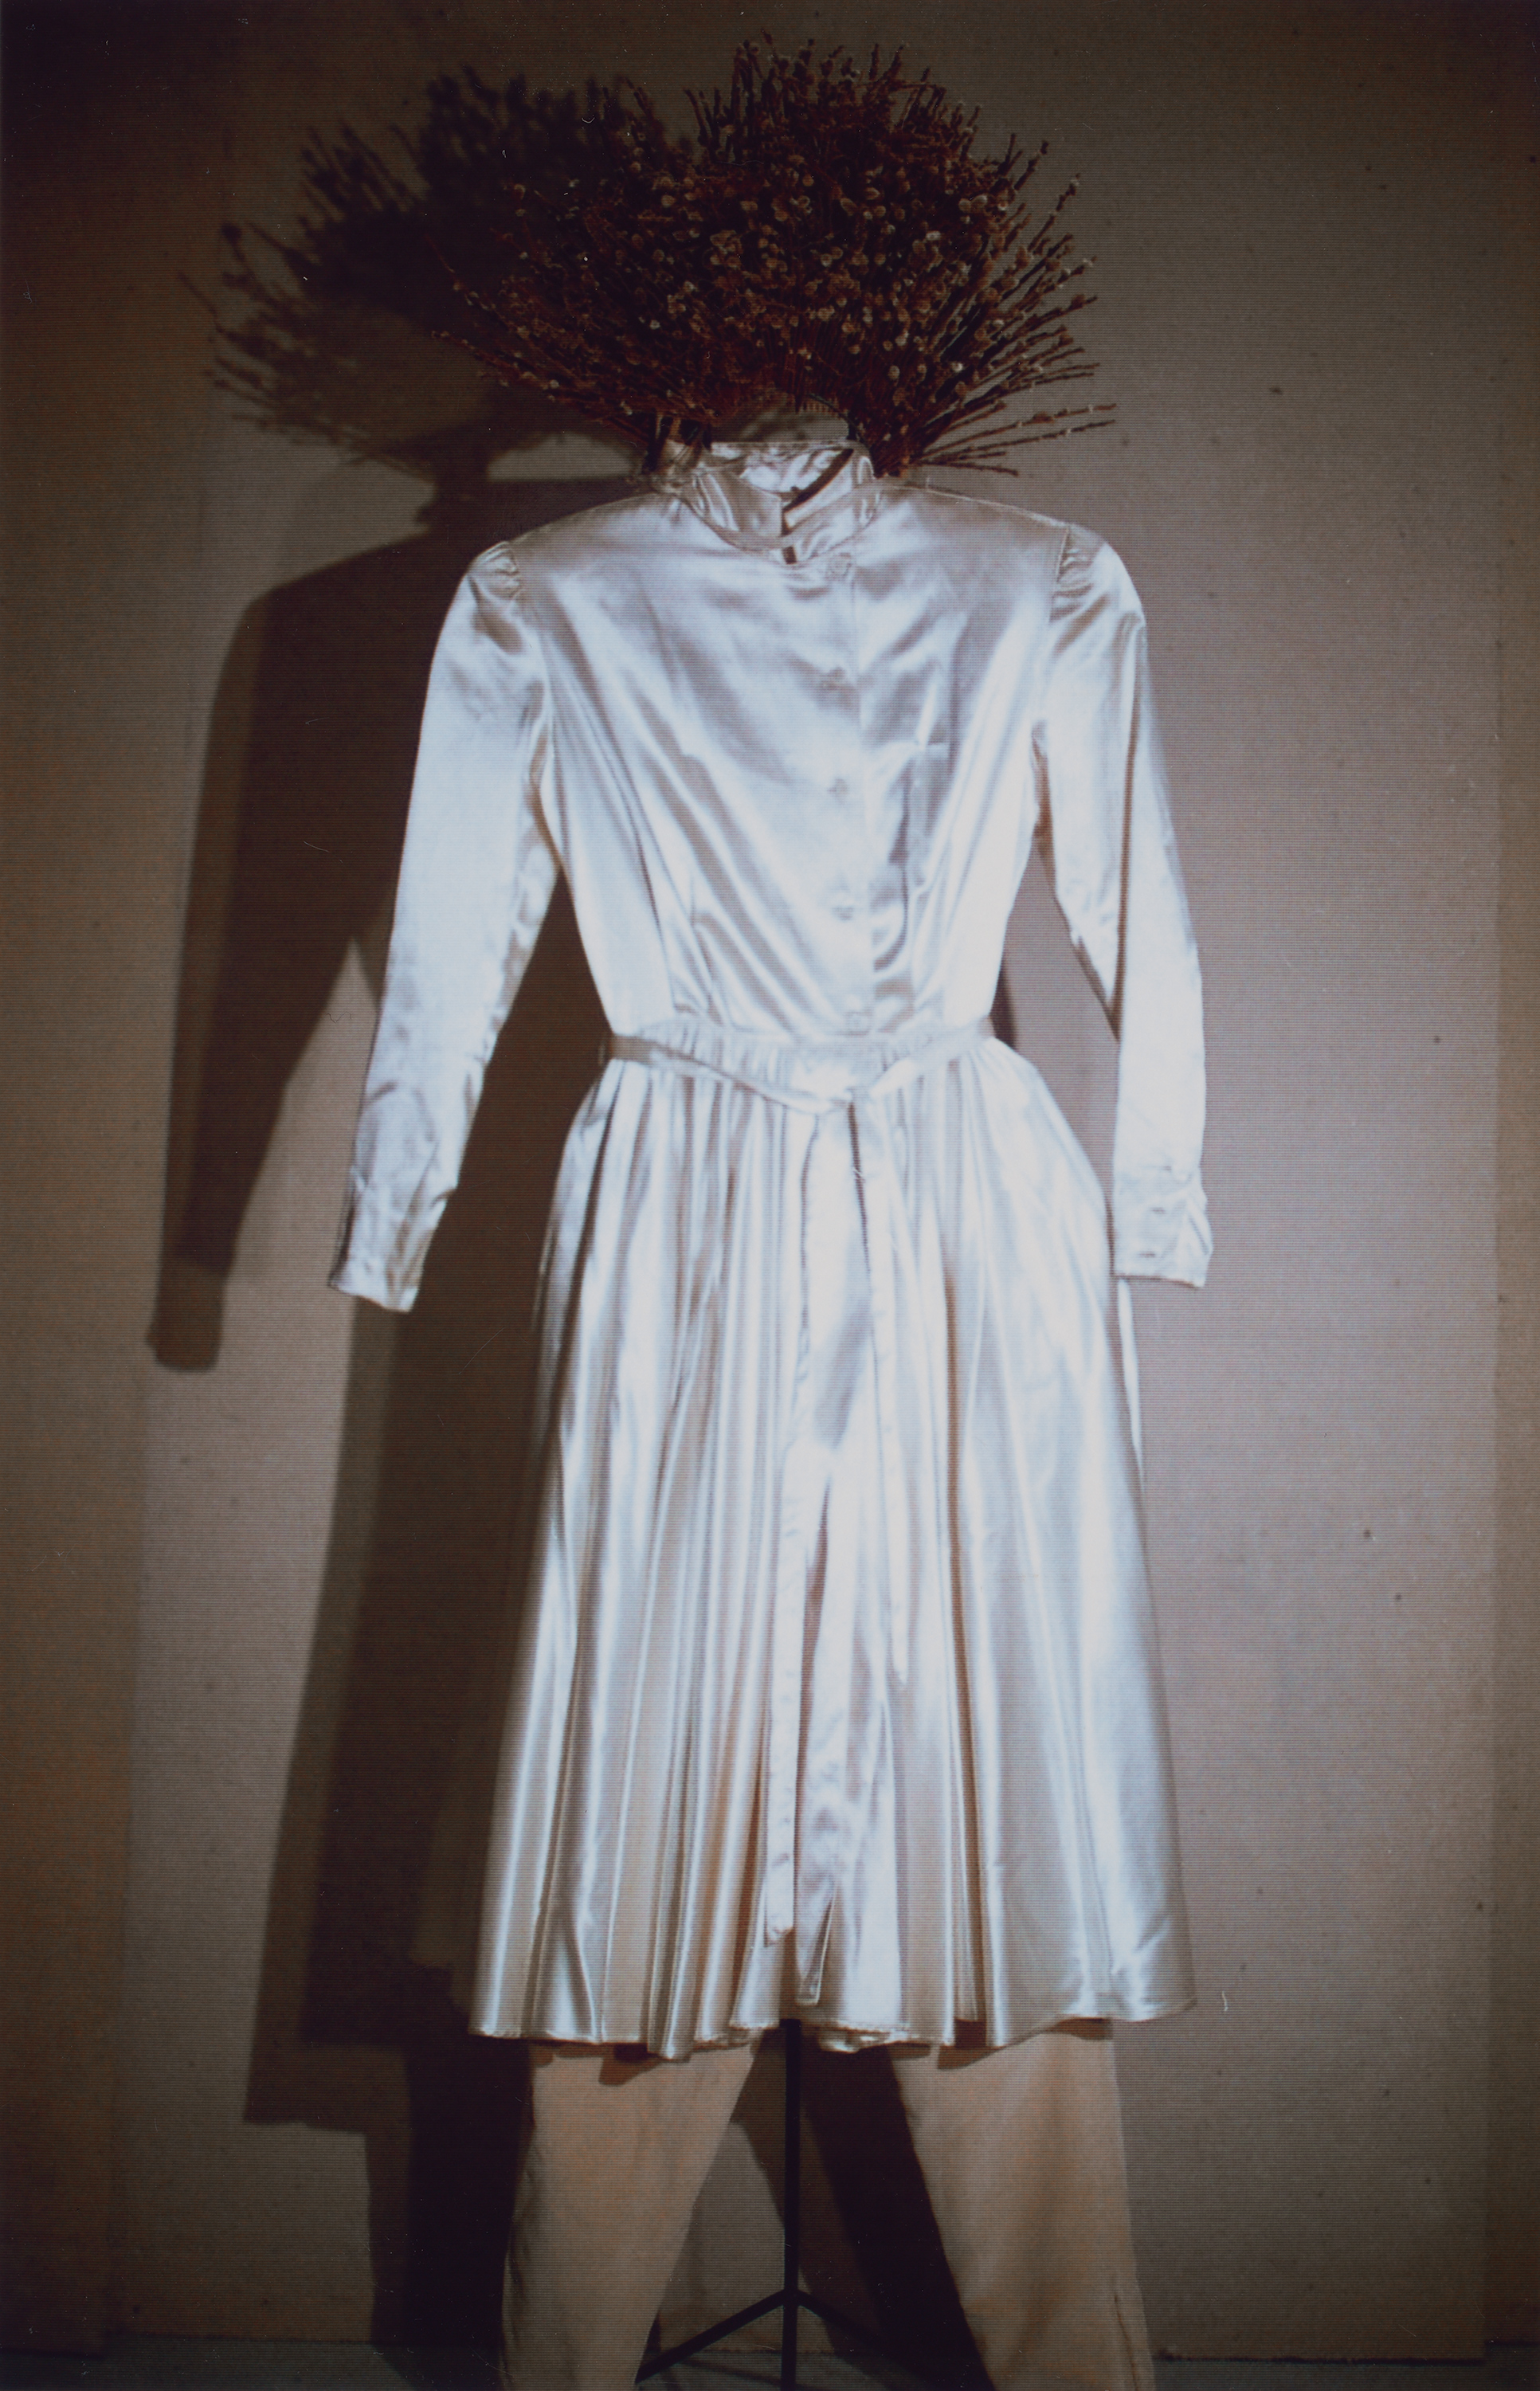 Wedding Dress For The Black Fashion Museum Willi Smith Community Archive